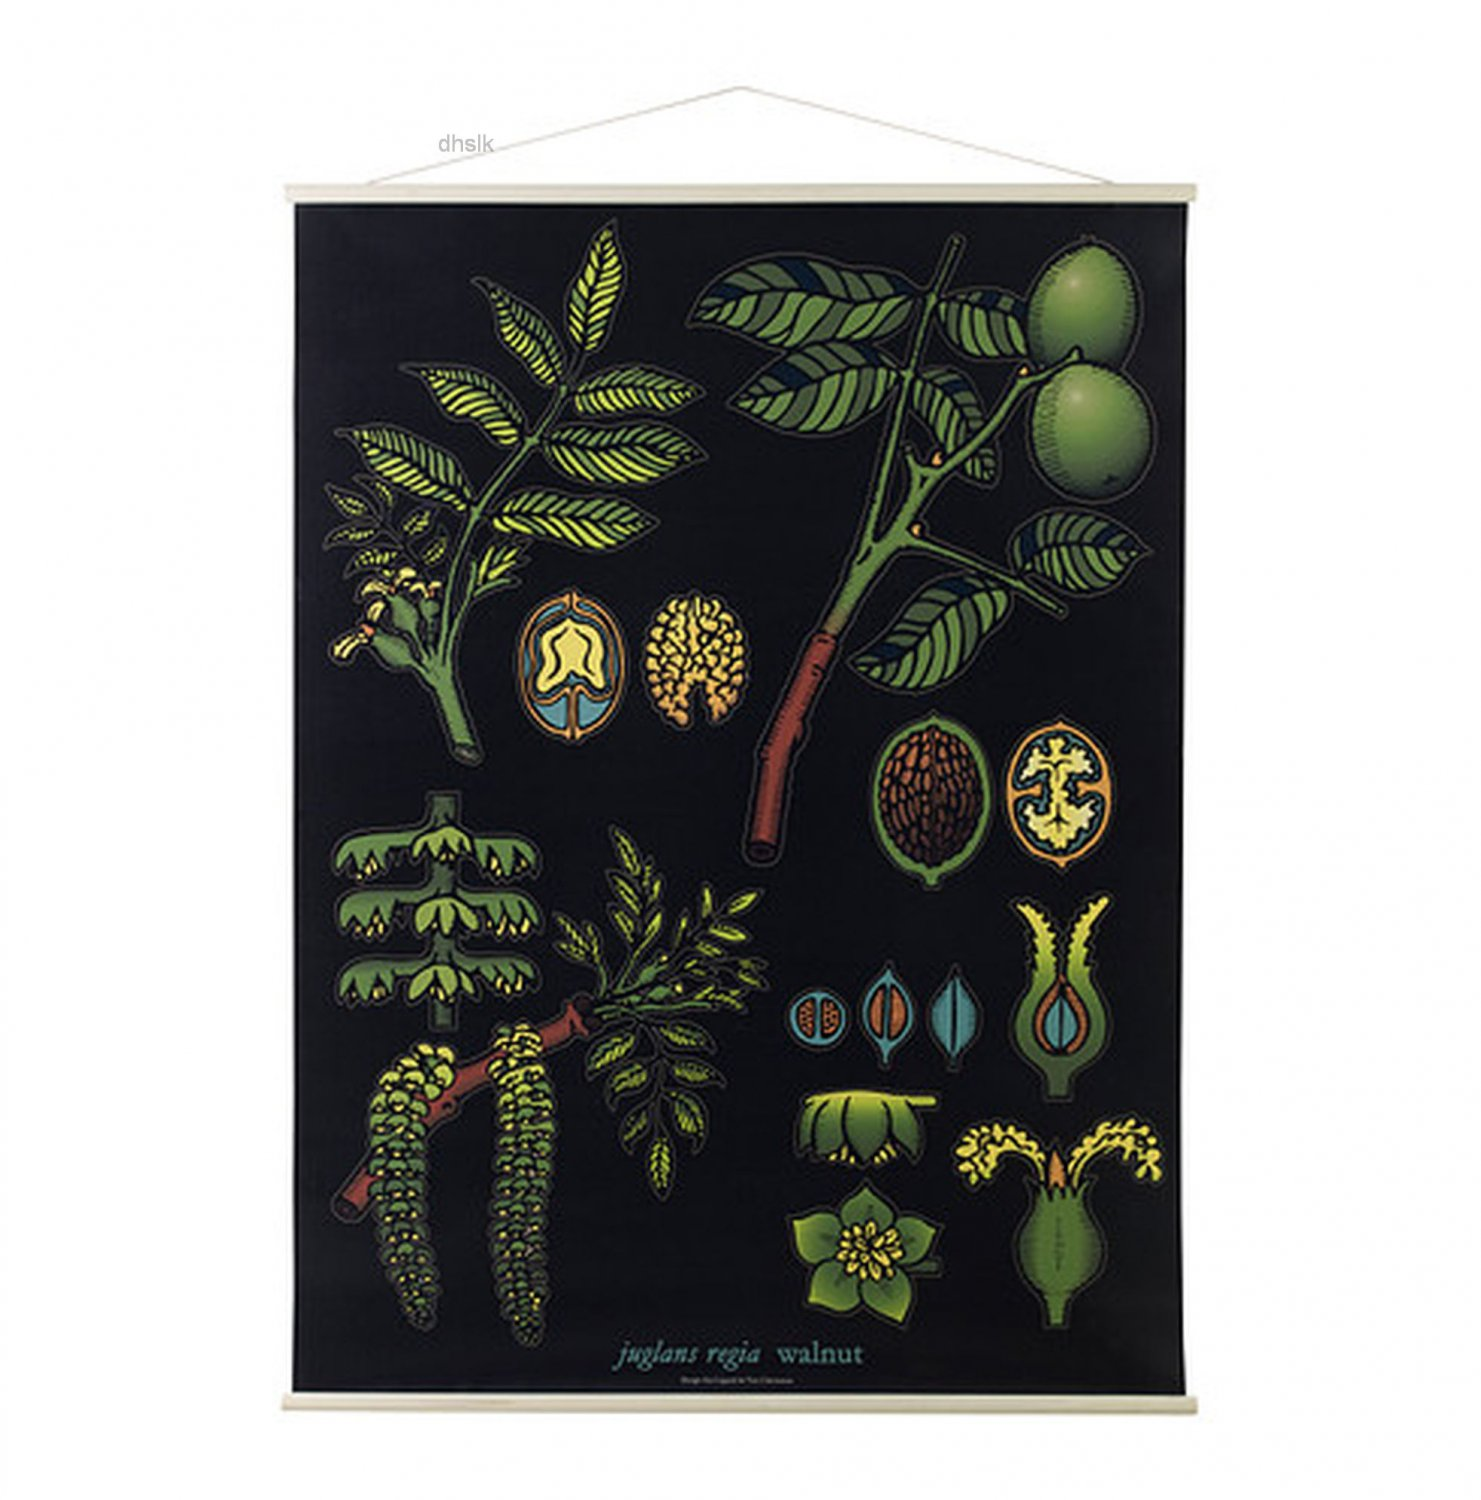 Ikea Poster Ikea Sibbared Art Poster Print Botanical Walnut Last One